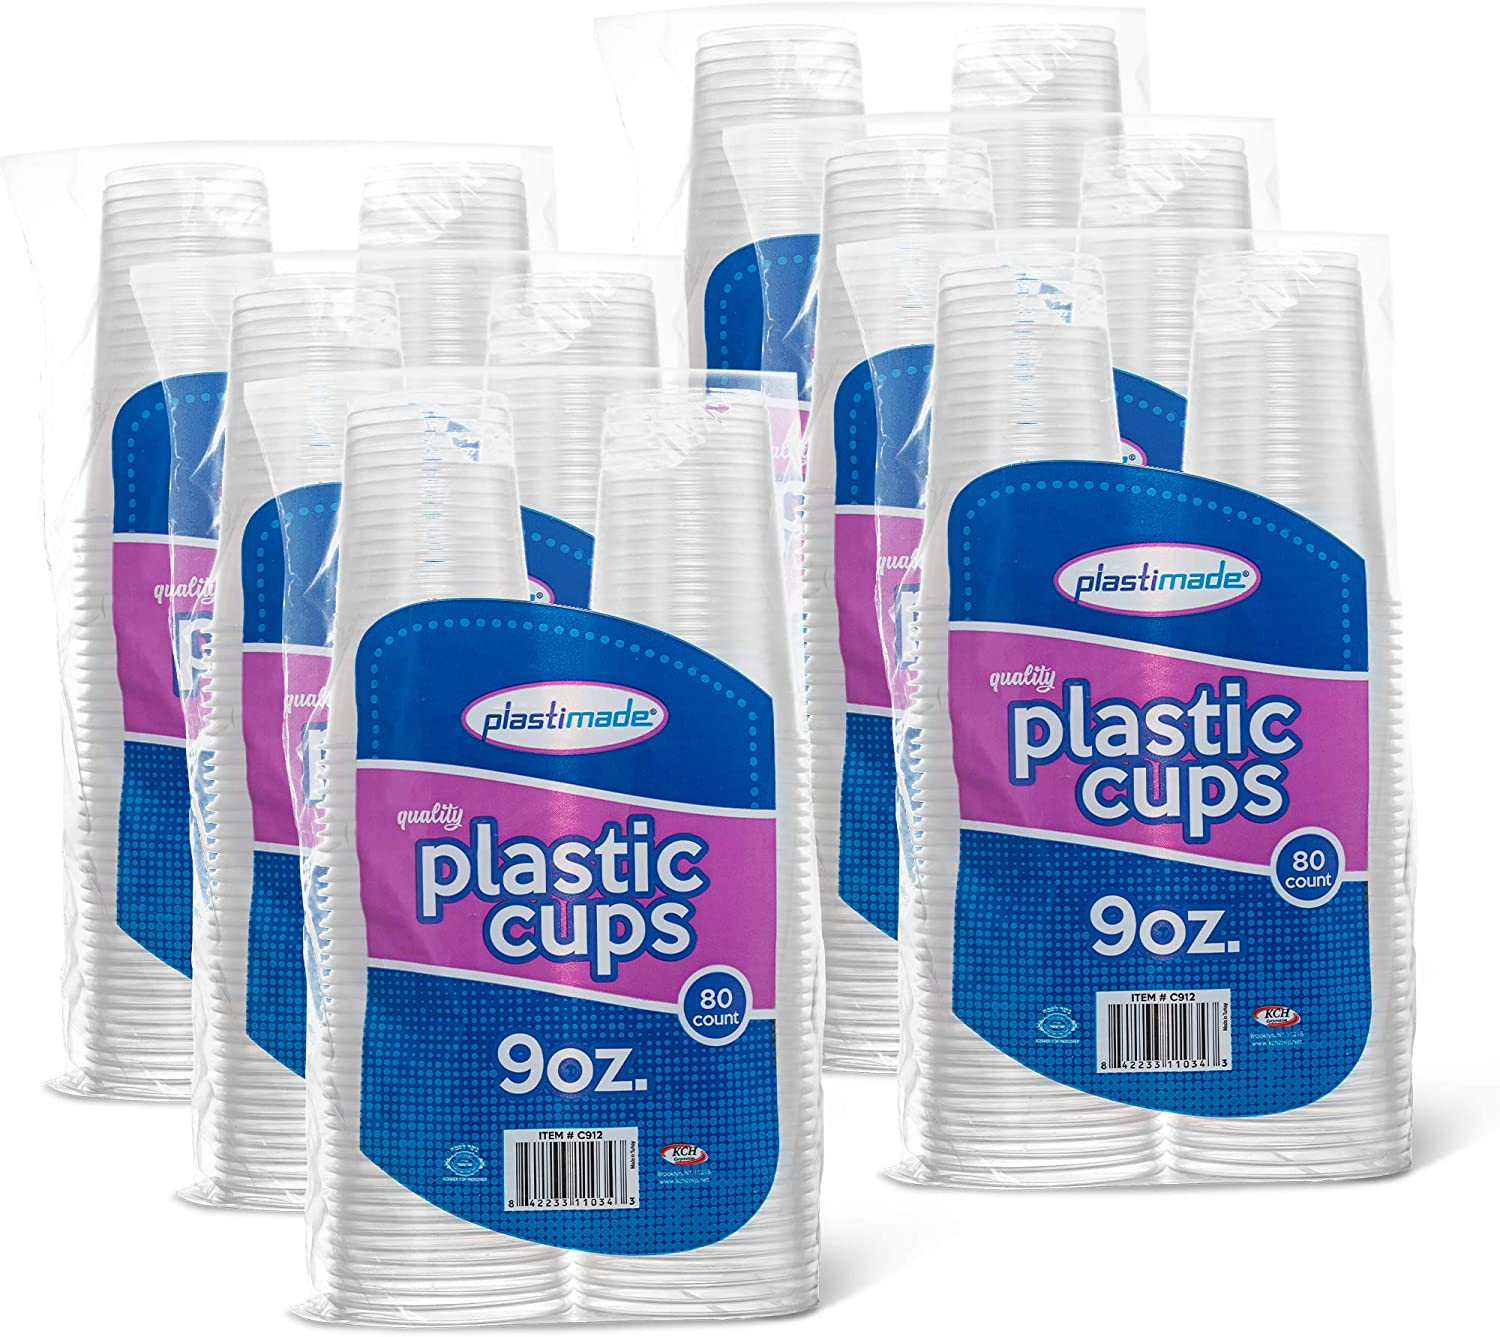 [480 Count] PlastiMade 9 Oz Clear Plastic Disposable Reusable Drinking Cups For Home, Office, Wedding, Events, Parties, Take Out, Water, Juice, Soda, Beer Cocktails (6 Packs)